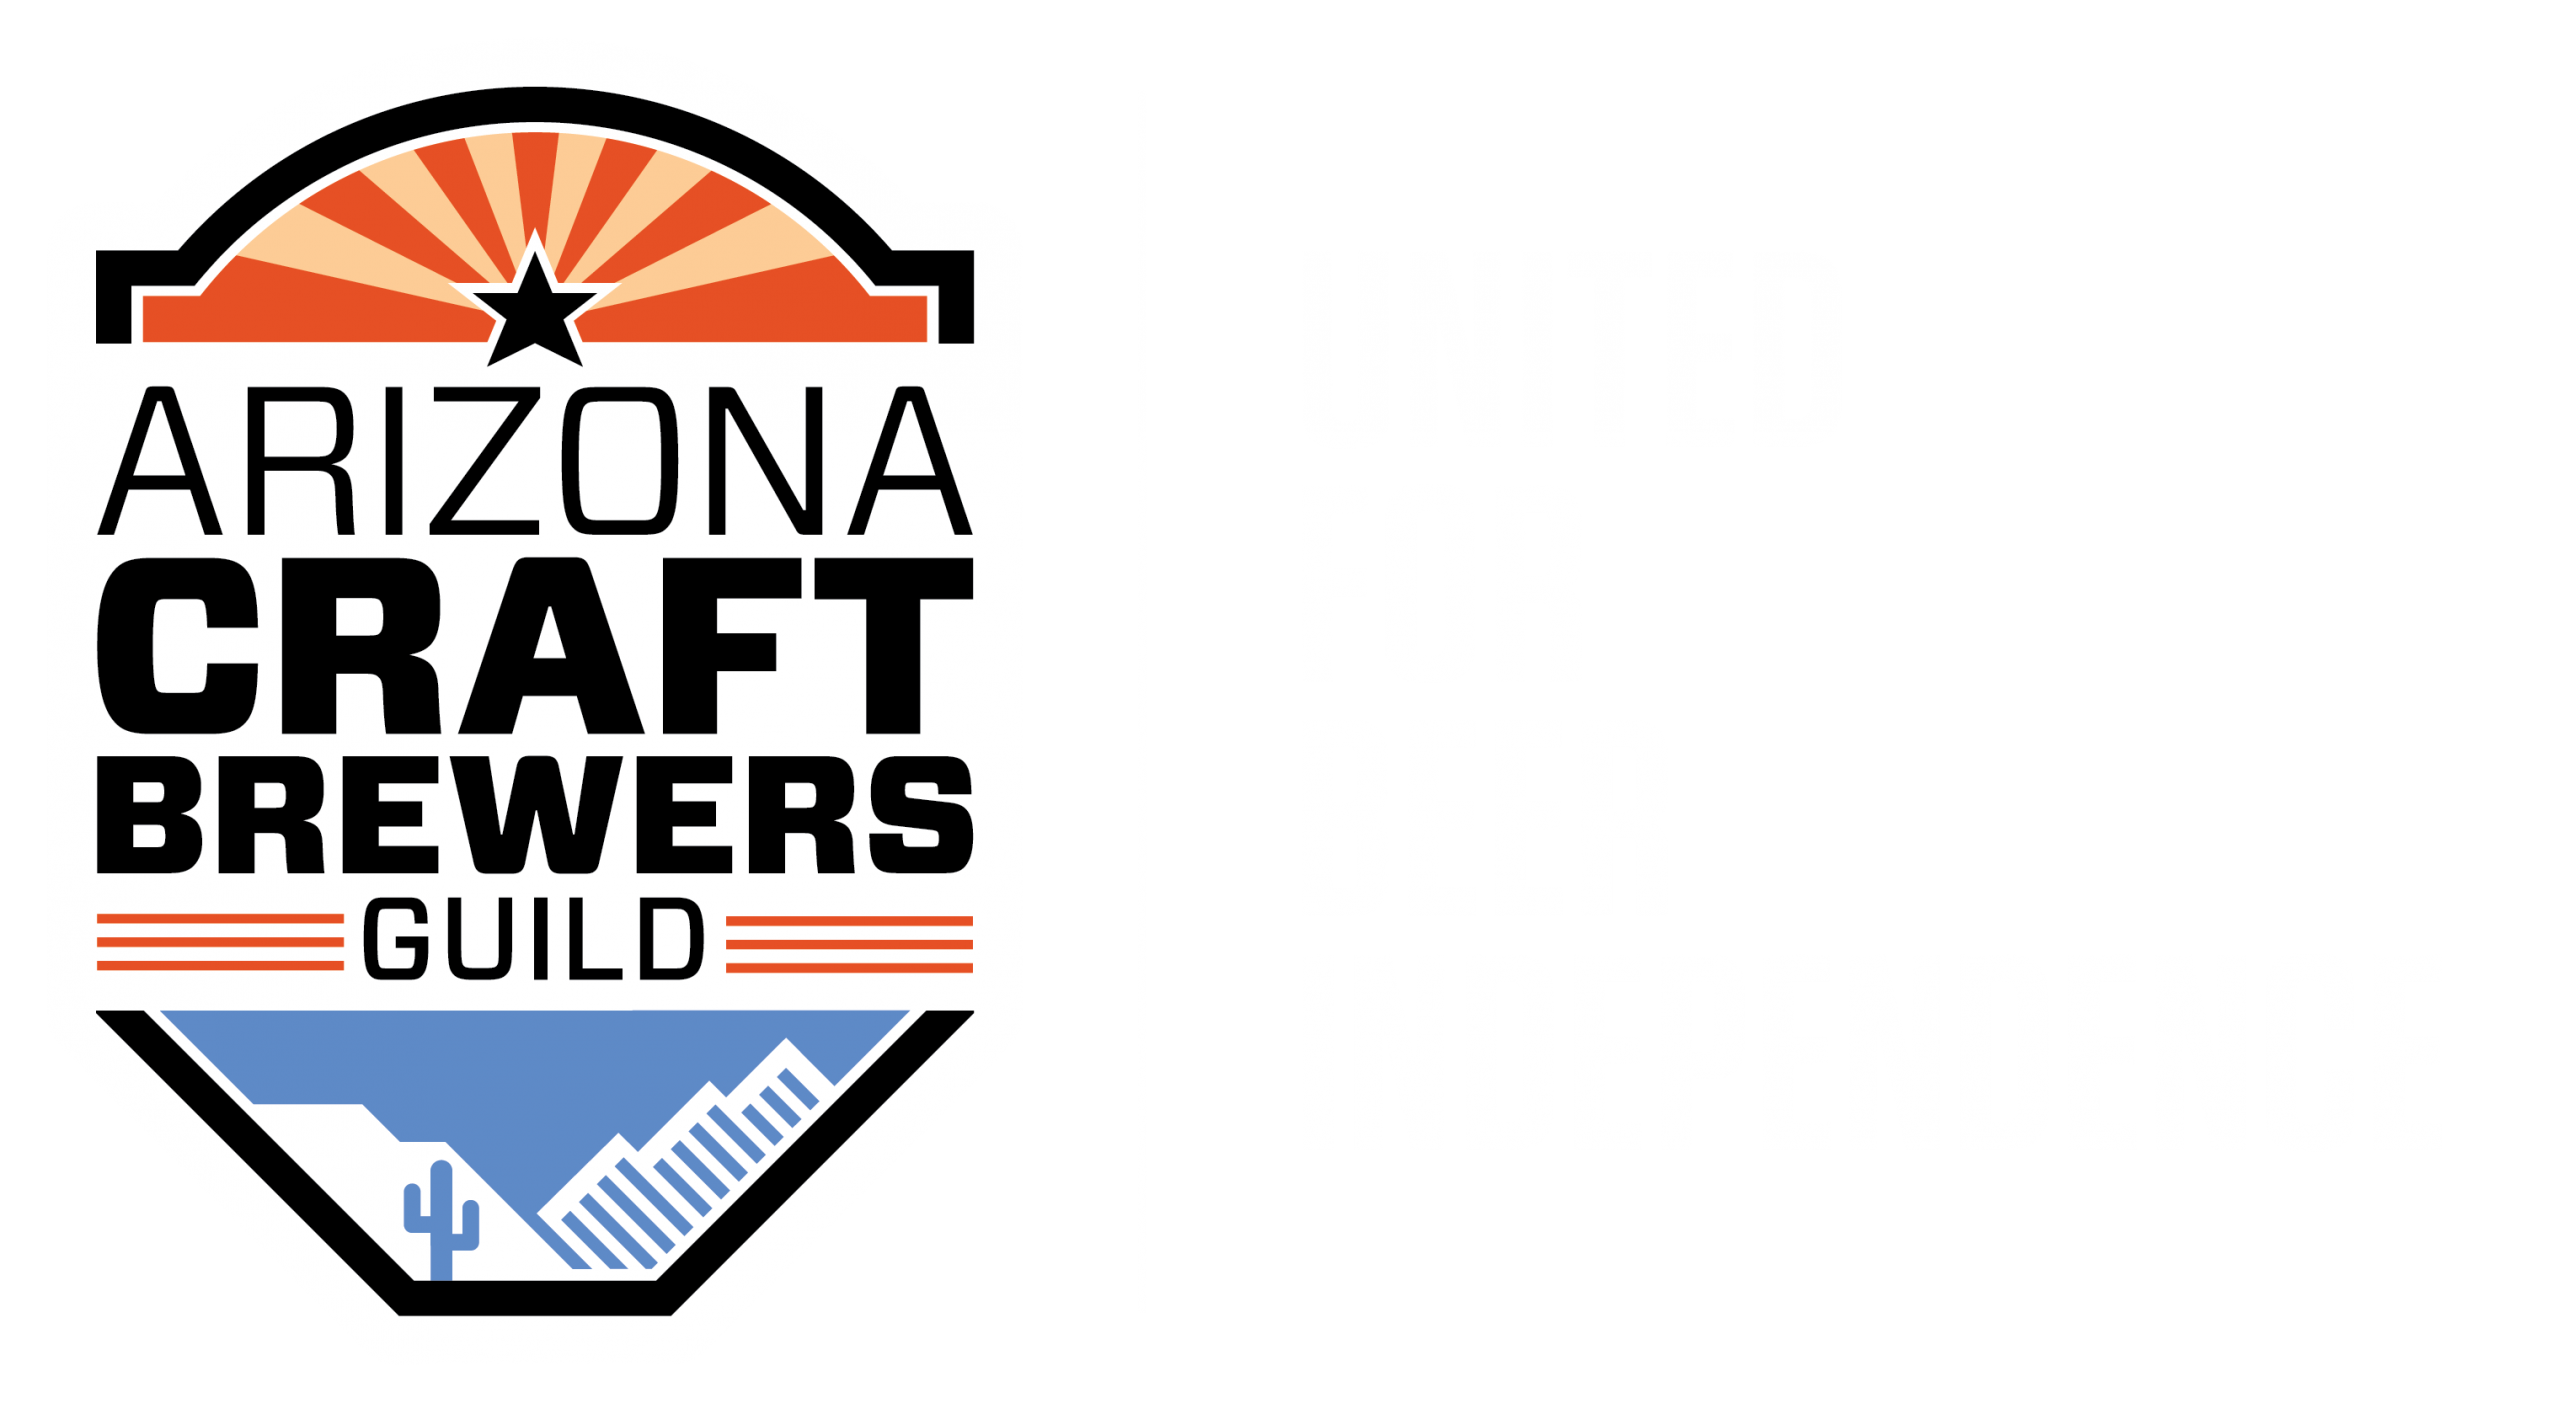 Arizona Food Marketing Alliance | Arizona Craft Brewers Guild